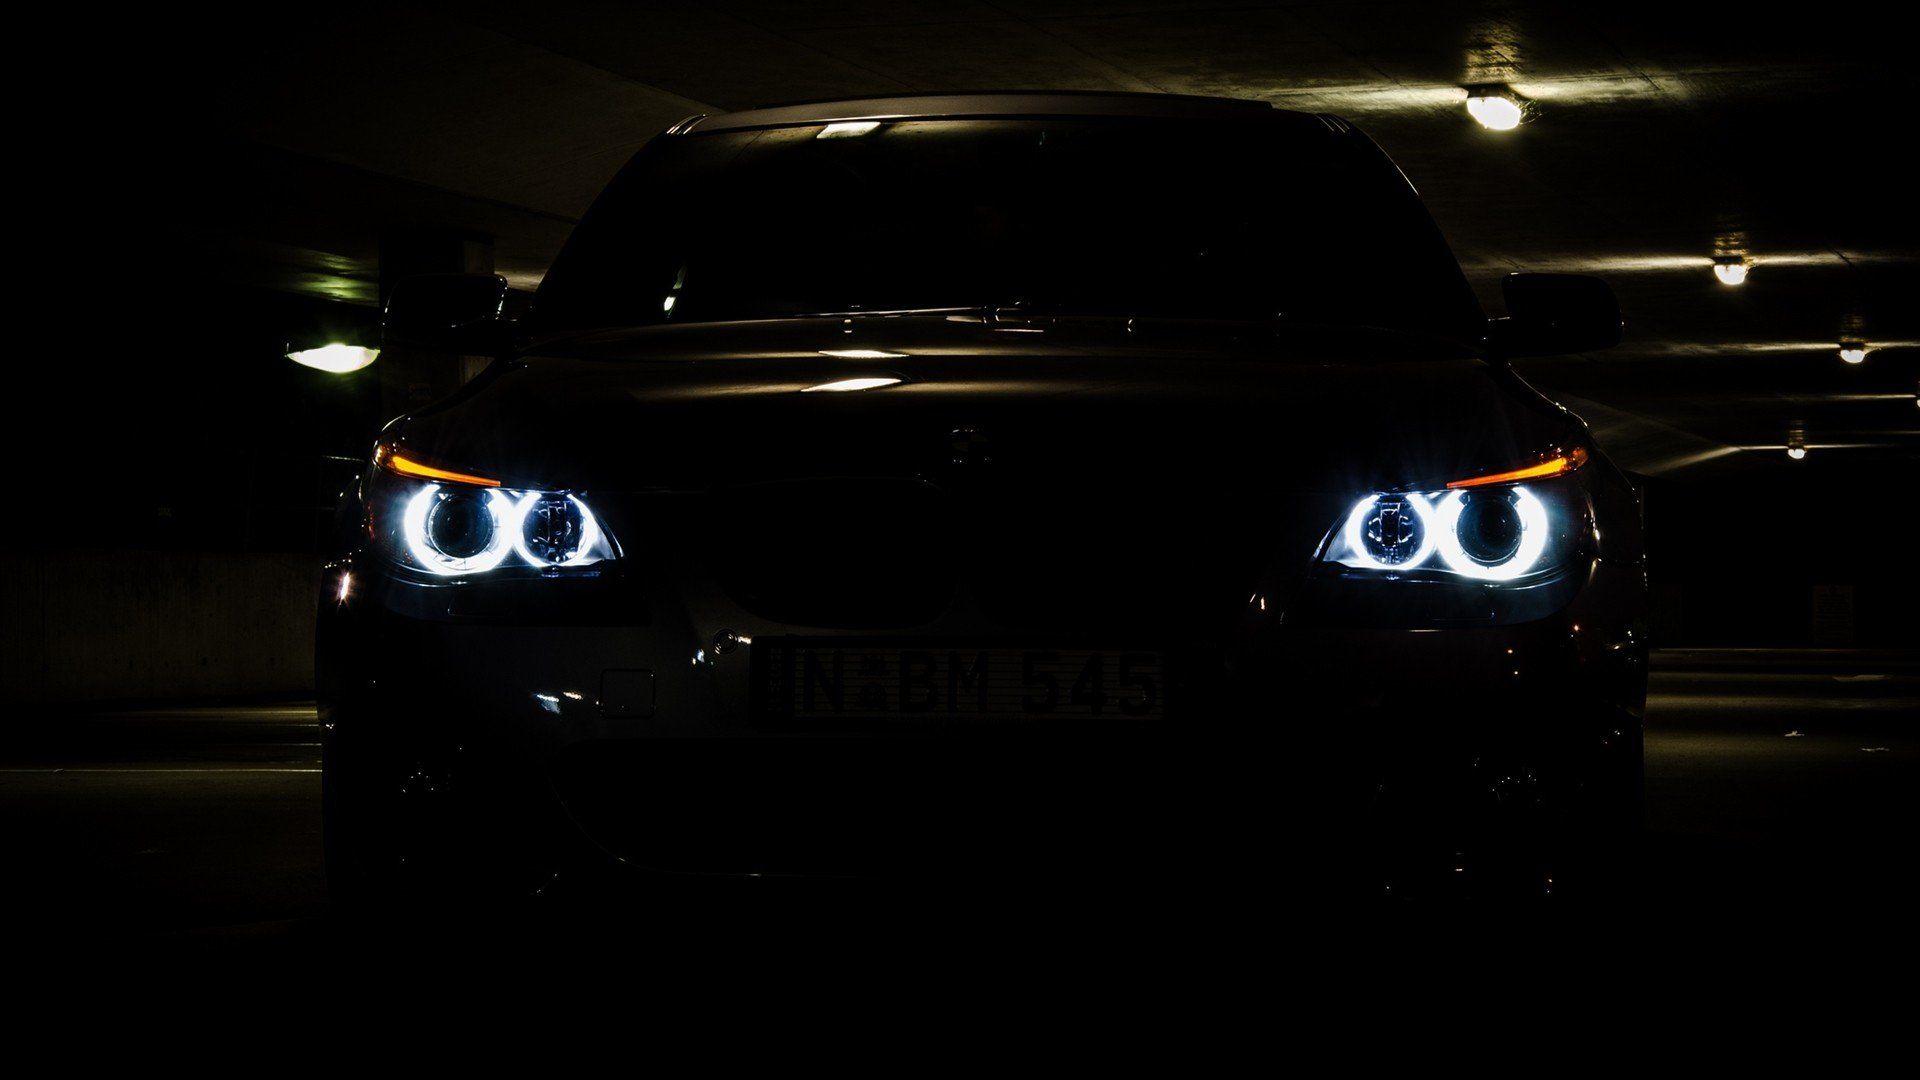 LEDIAMOND BMW ANGEL EYES